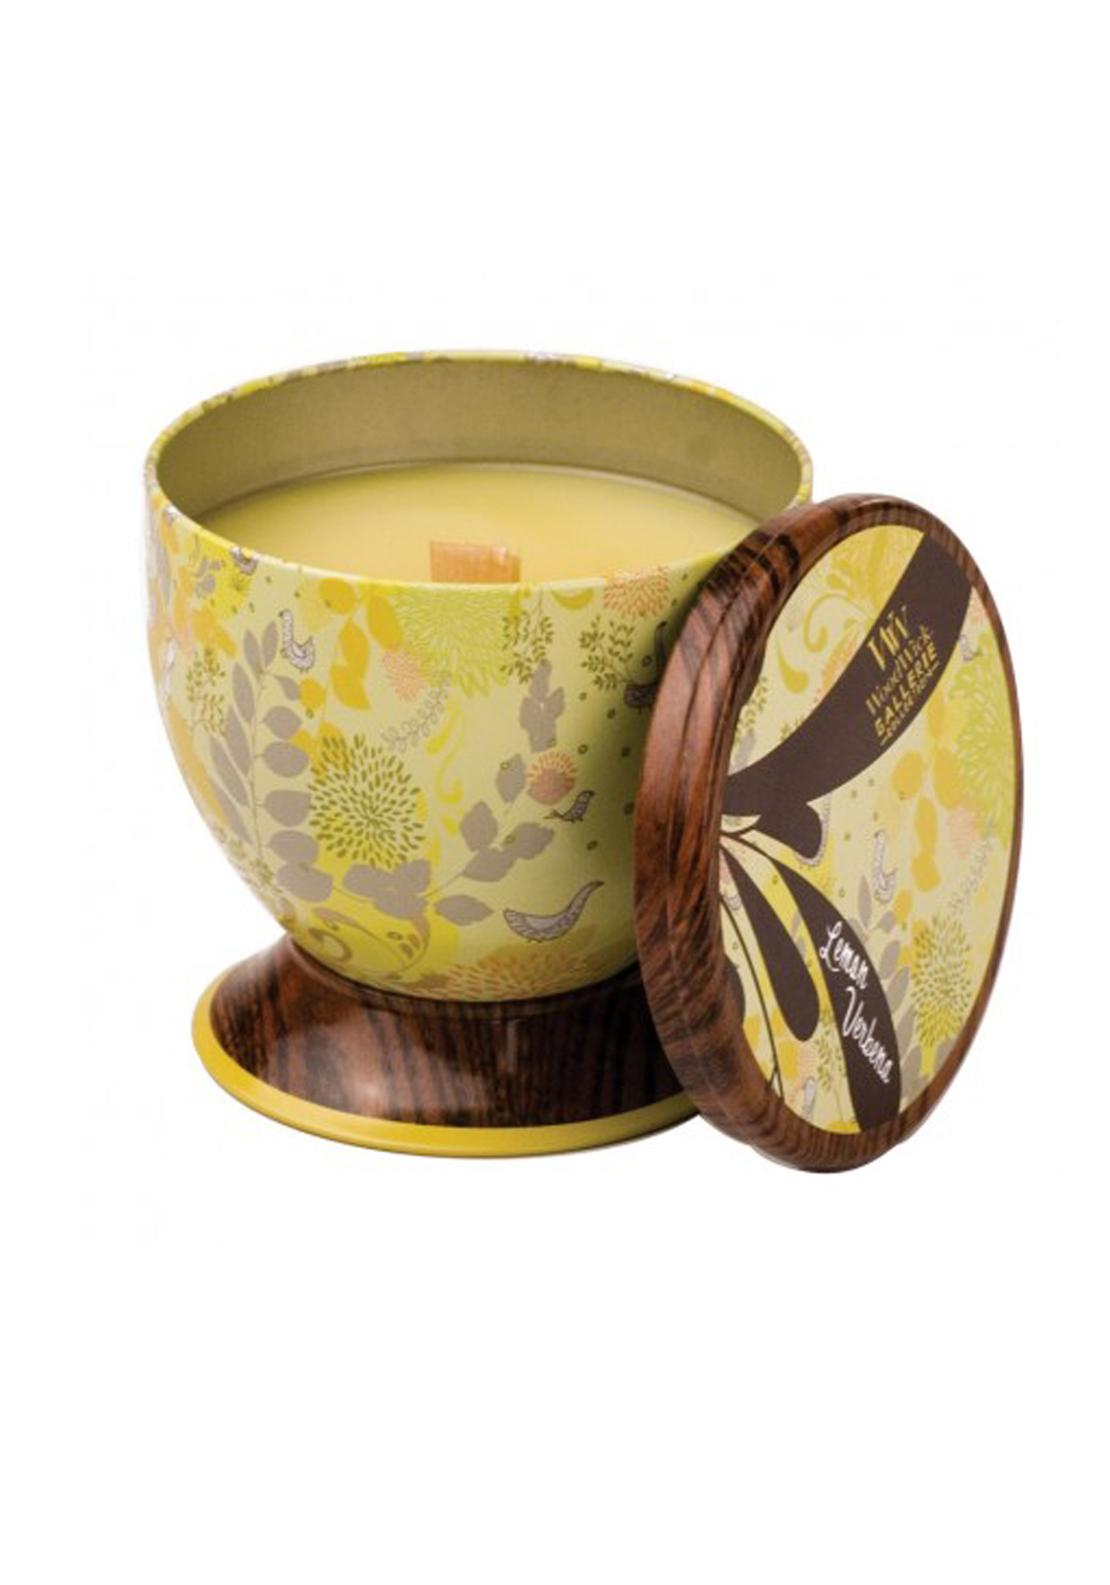 Woodwick Gallerie Collection, Scented Candle, Lemon Verbena